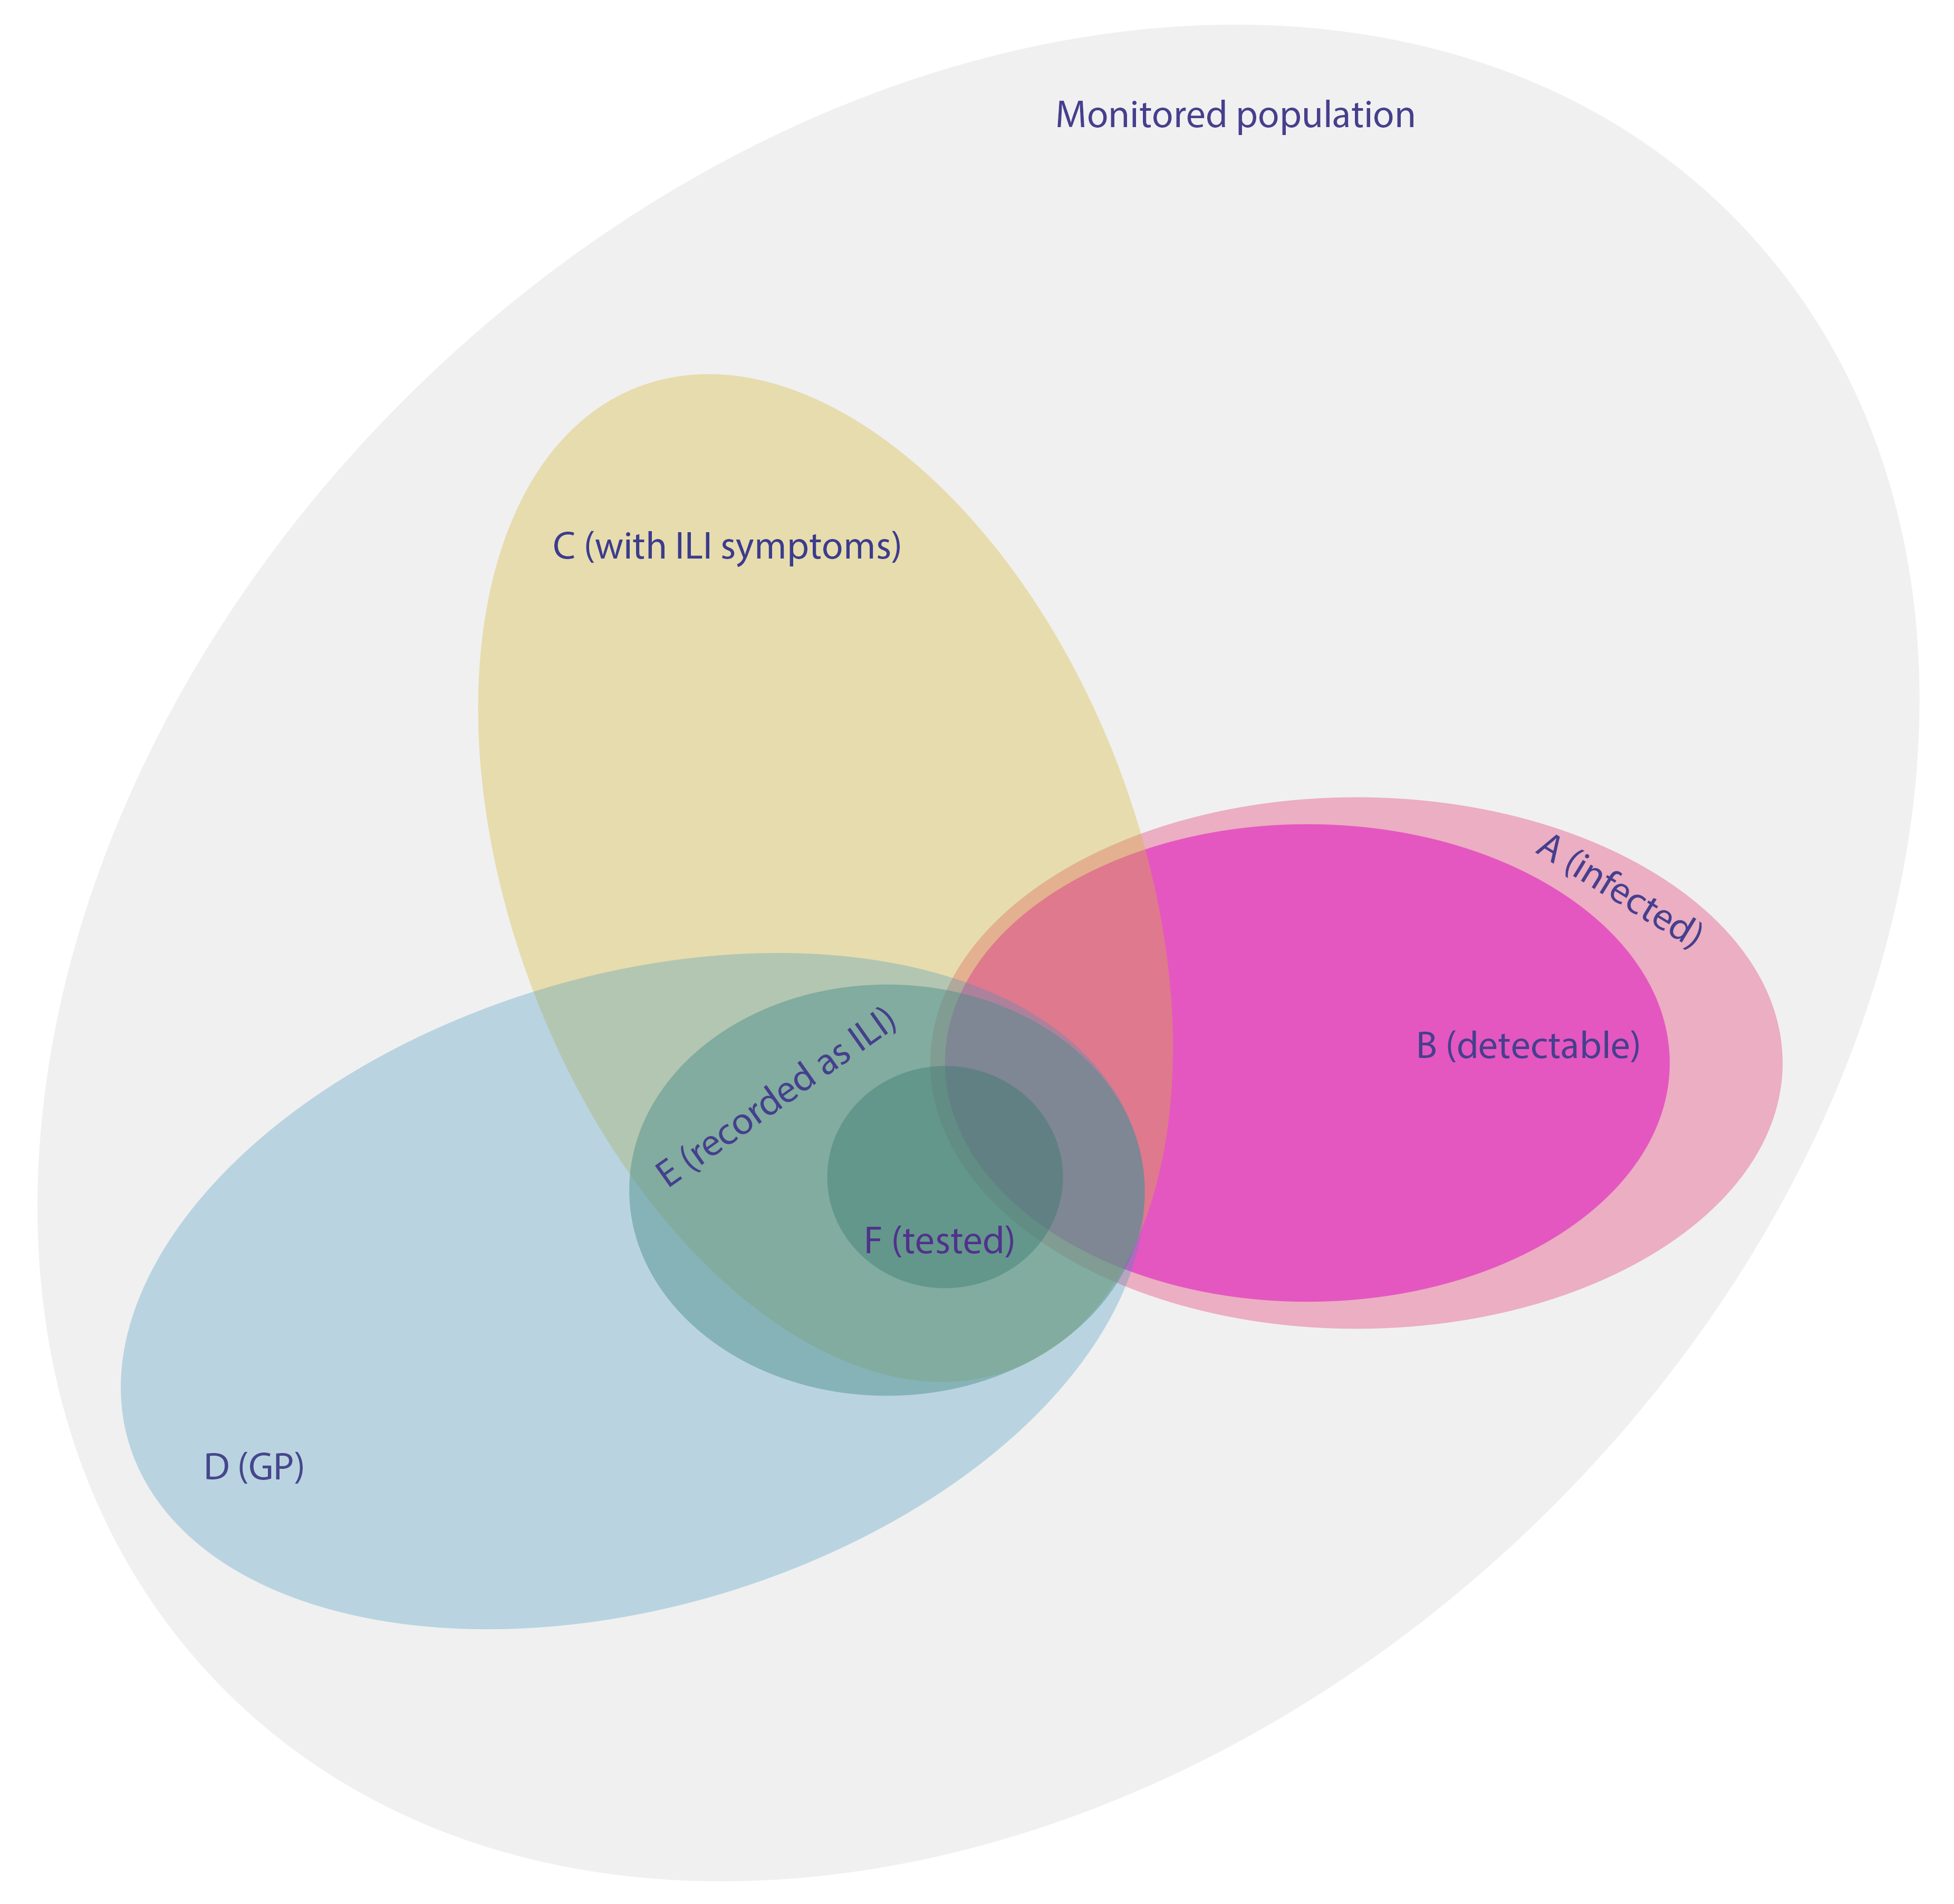 Venn diagram giving a schematic representation of the different surveillance schemes and clinical statuses.